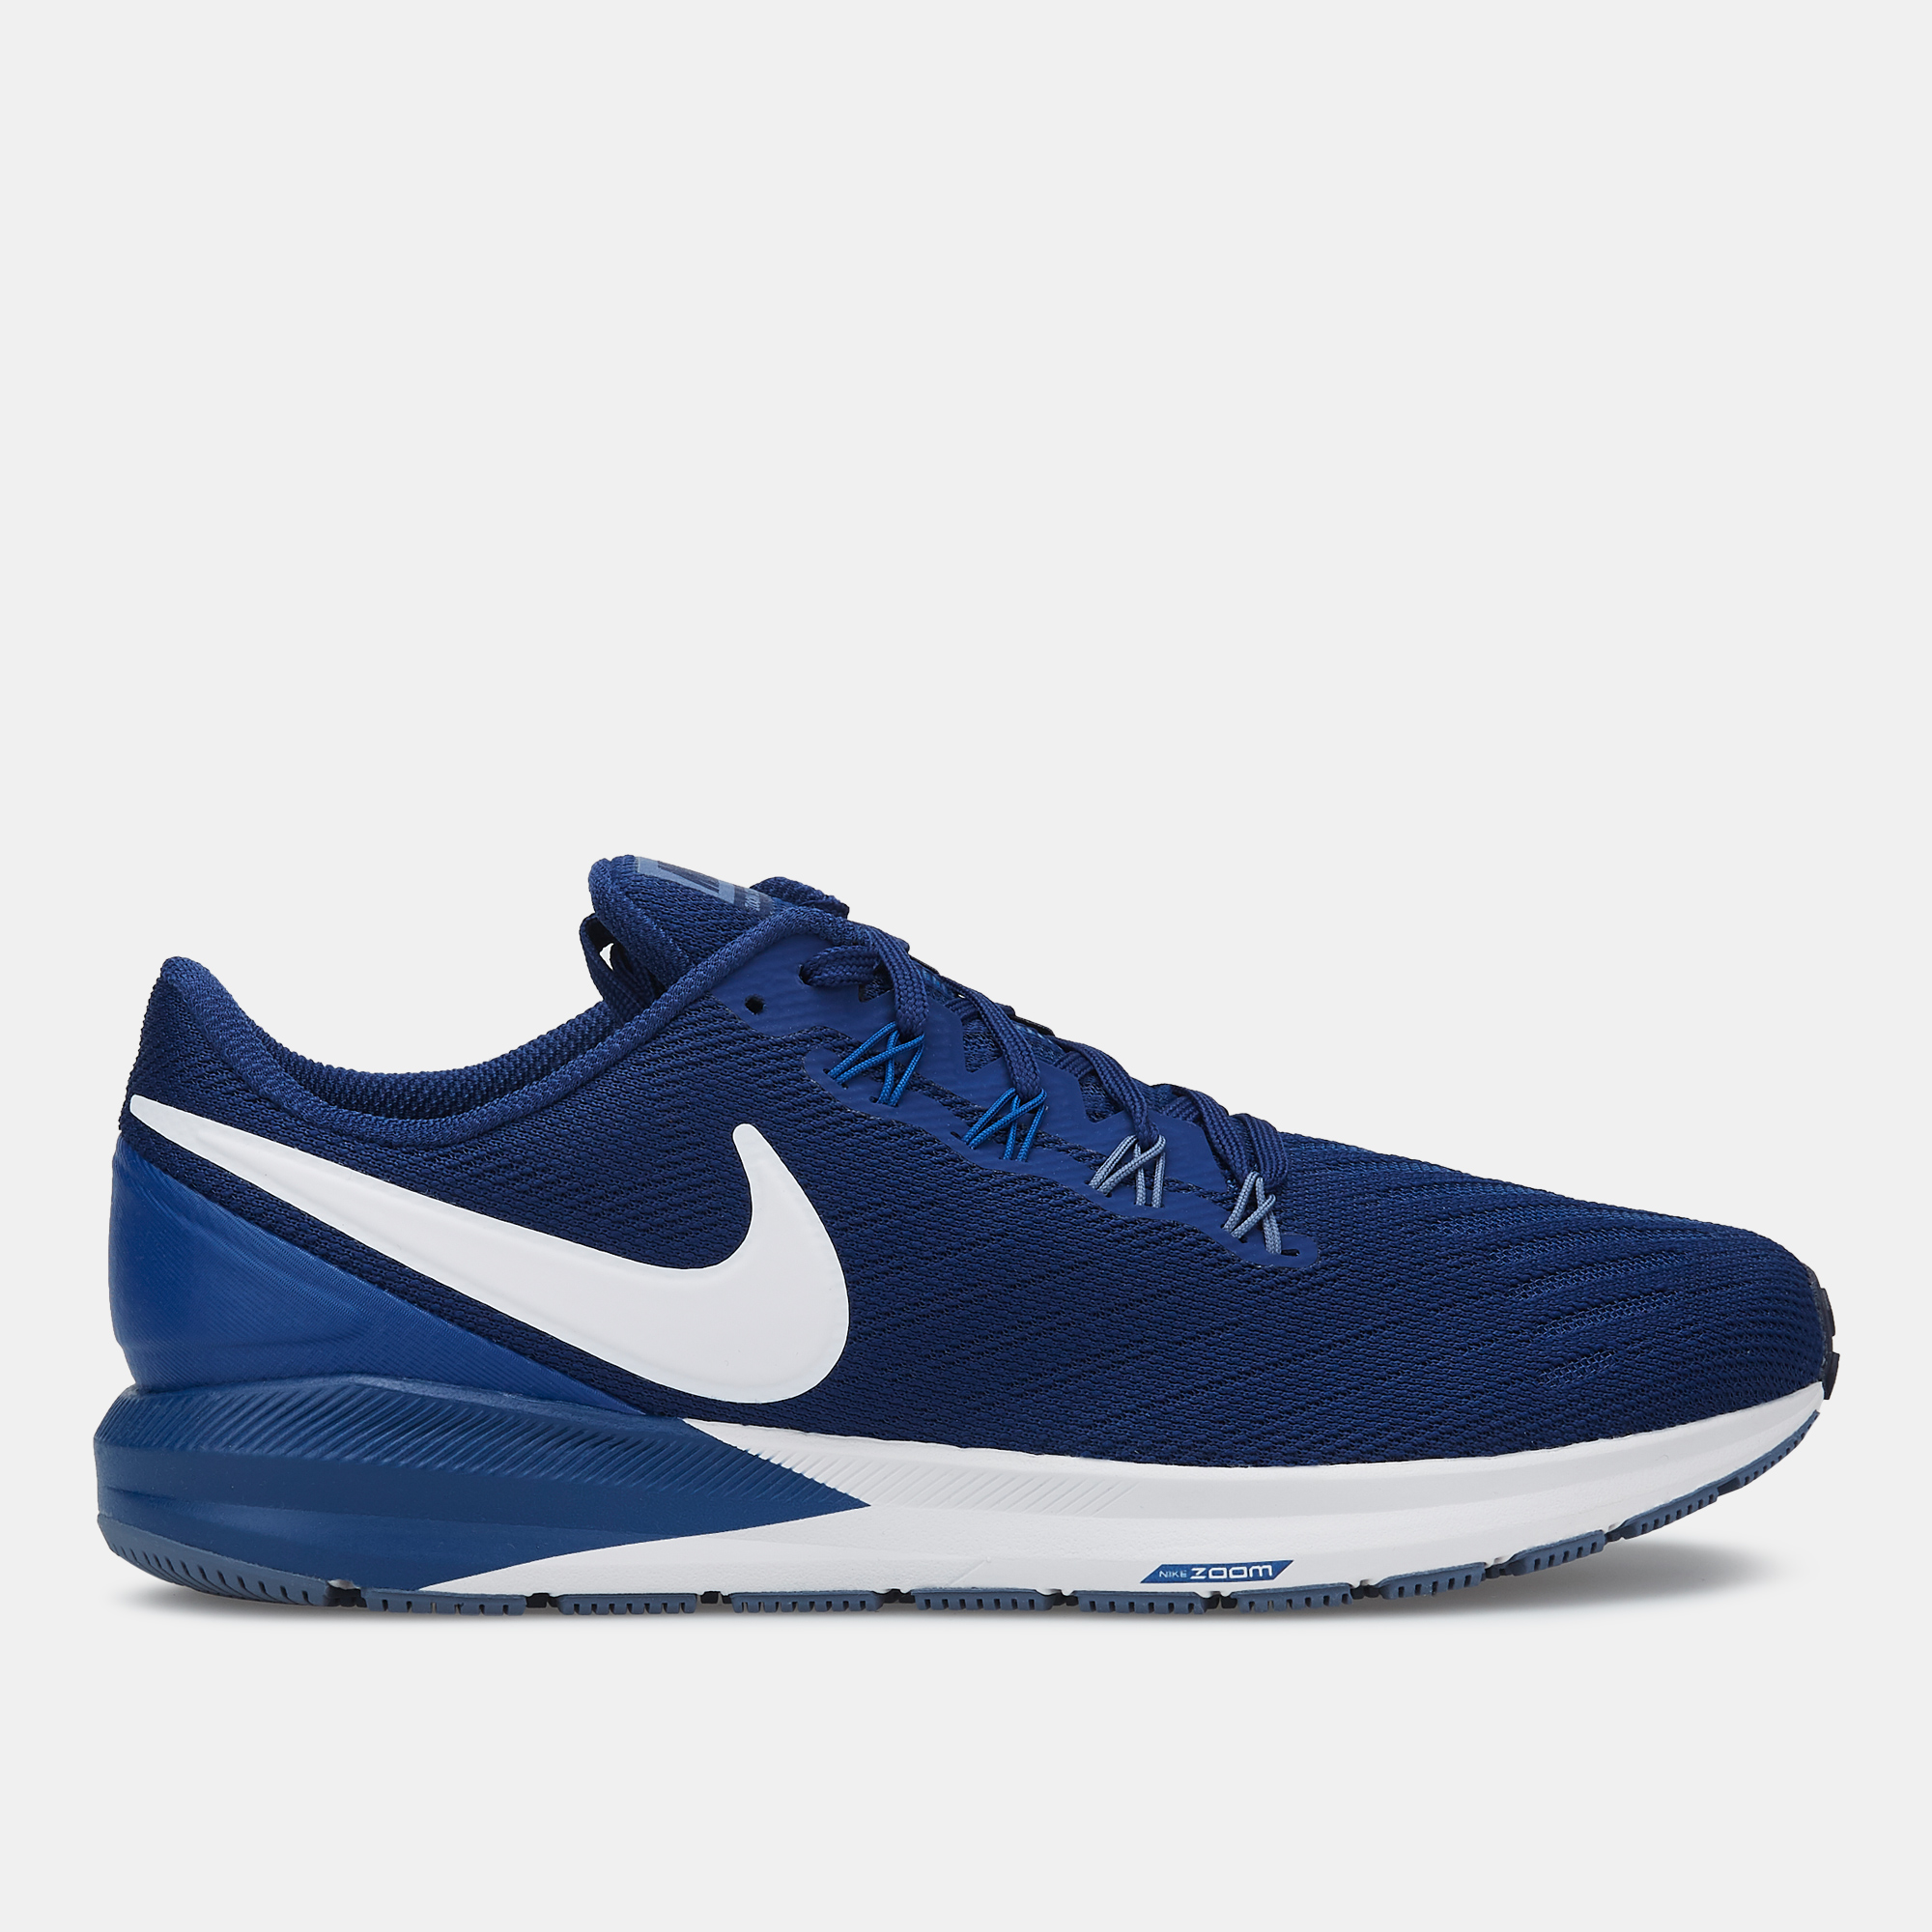 finest selection 3d7fa 280ea Nike Men's Air Zoom Structure 22 Running Shoe